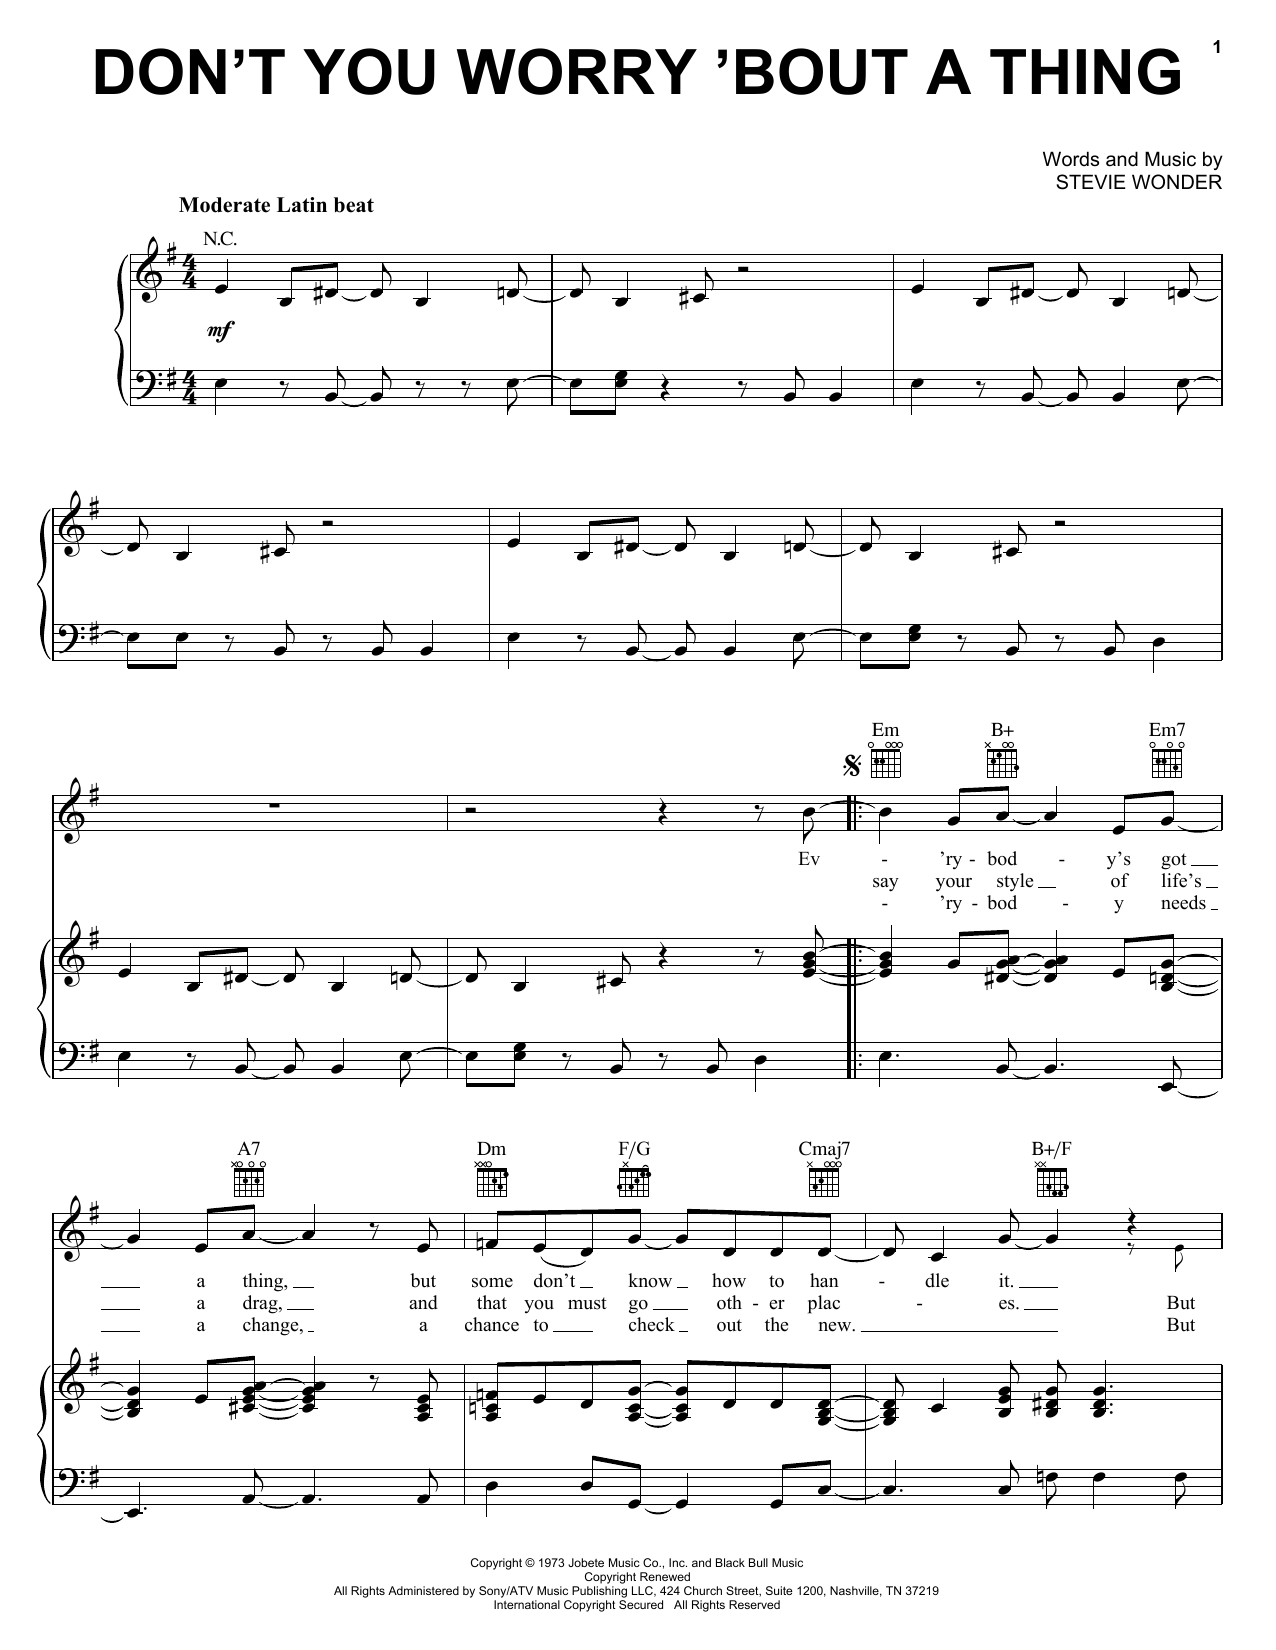 Stevie Wonder Don't You Worry 'Bout A Thing sheet music notes printable PDF score